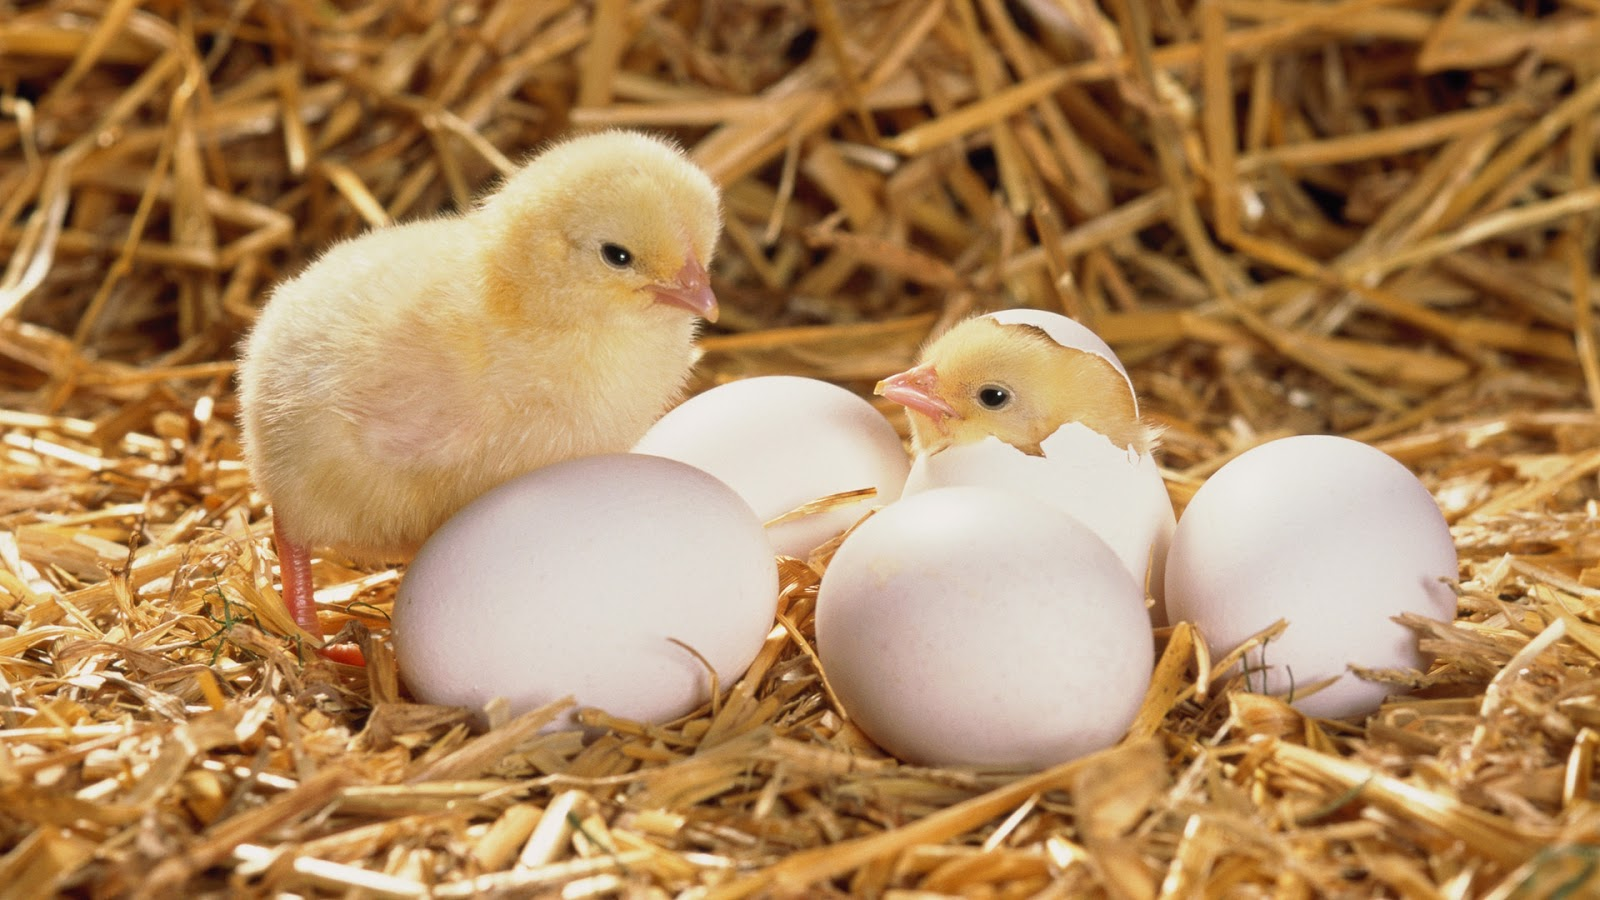 terrierman s daily dose egg technology saving money and lives